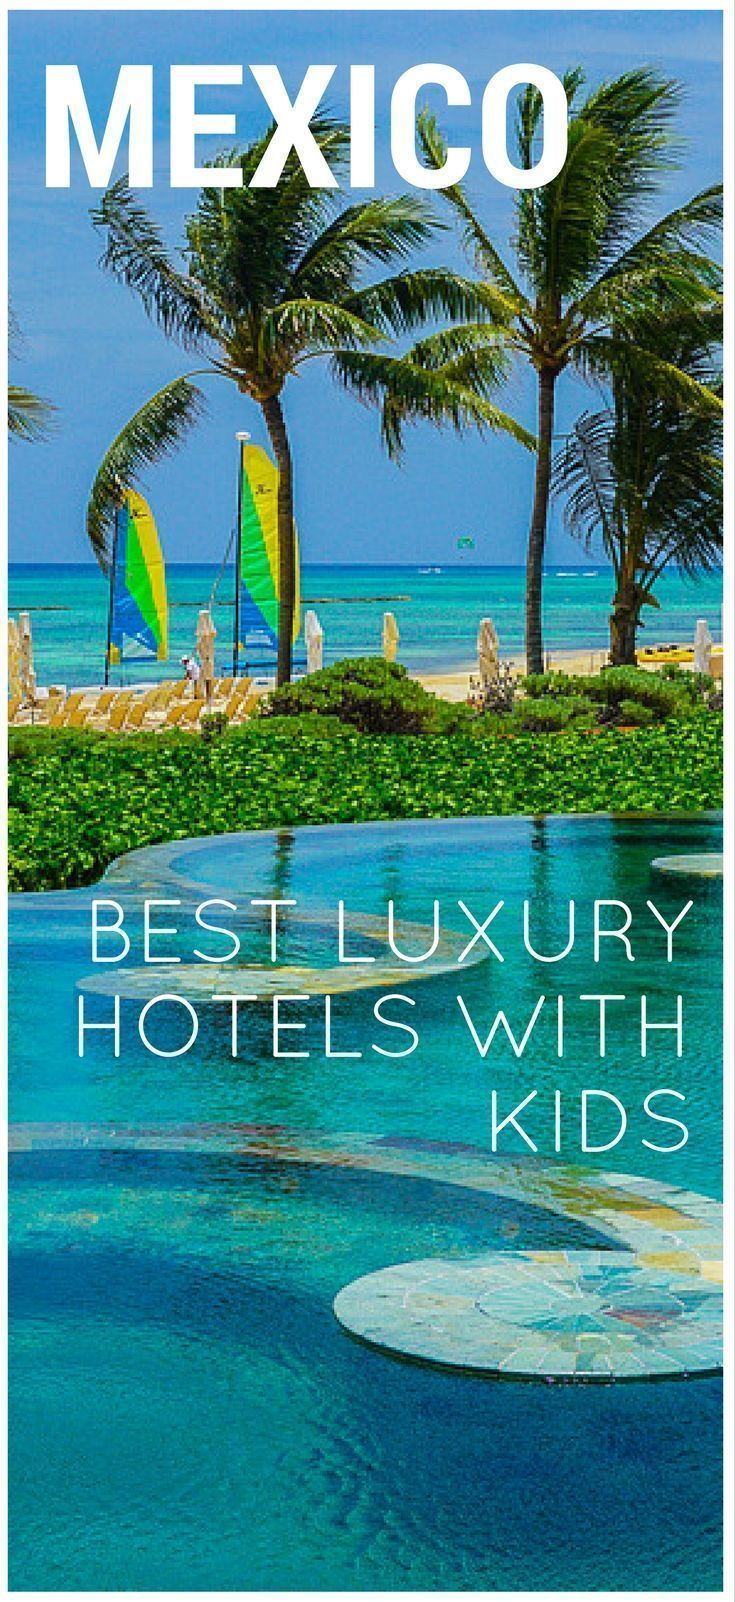 We've featured the best luxury all-inclusivive resorts for kids in Playa del Carmen for a family vacation in the Riviera Maya.